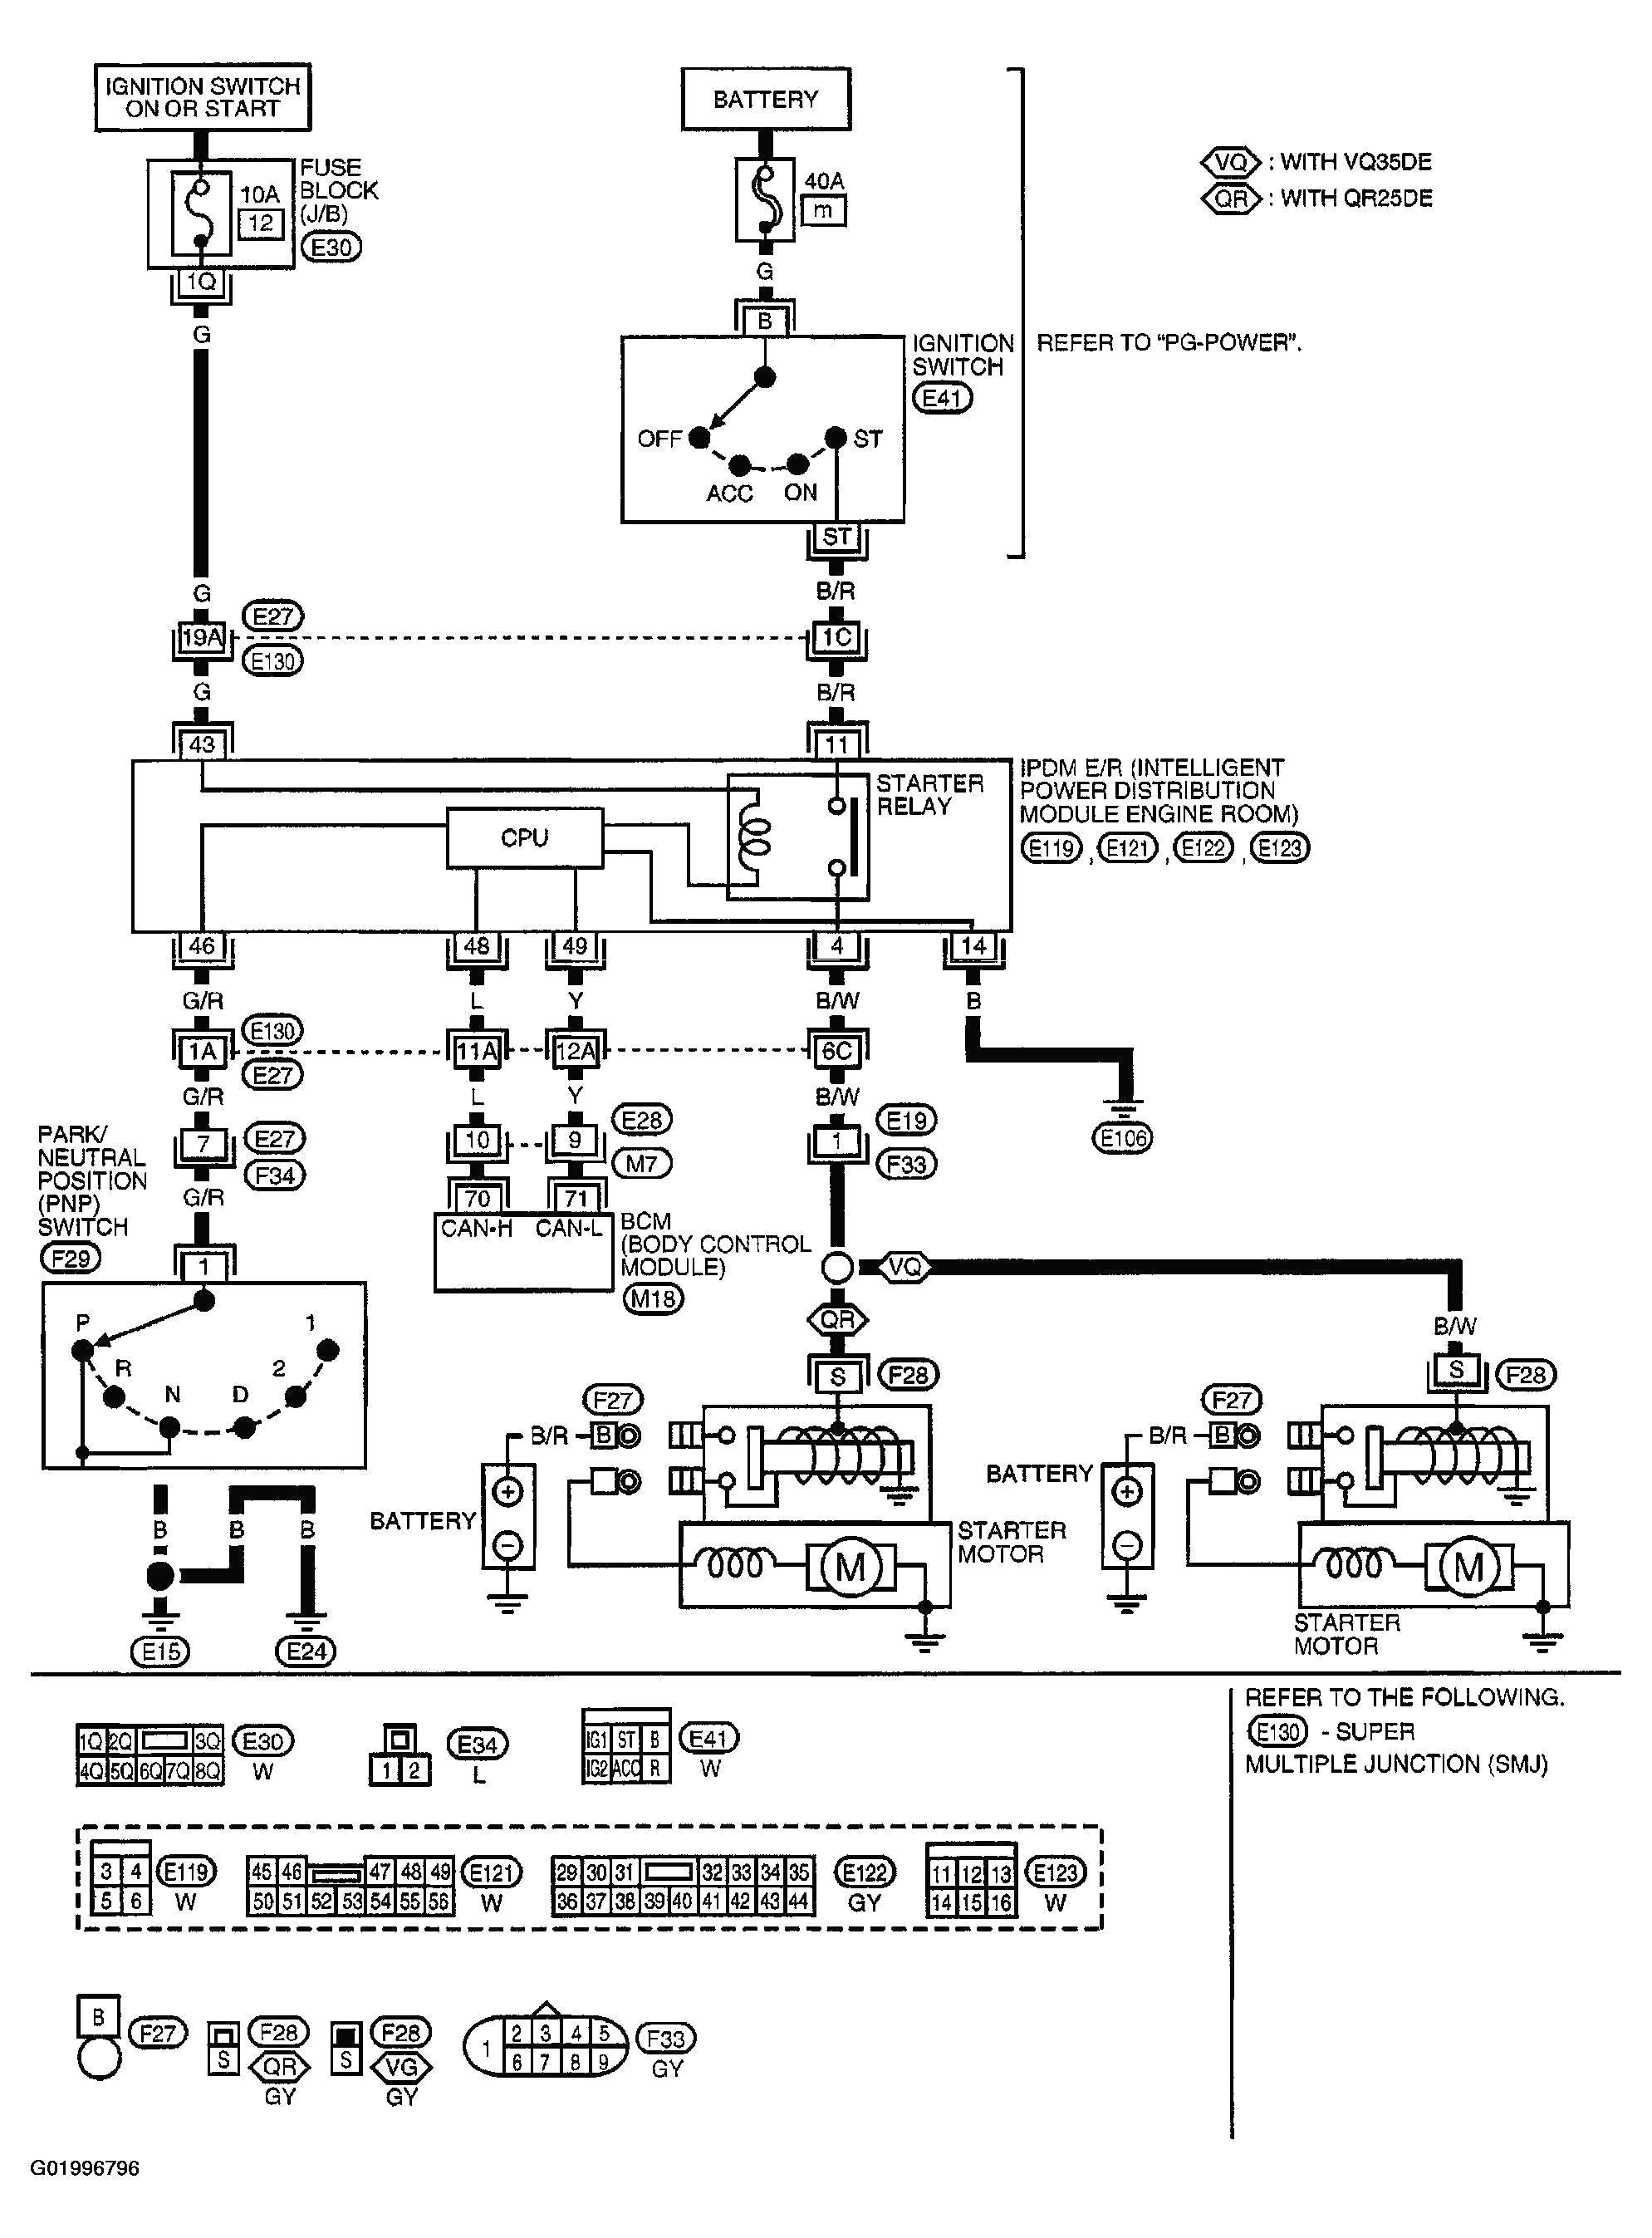 2015 nissan altima fuse diagram - auto electrical wiring ... 1994 nissan altima wiring diagram #8